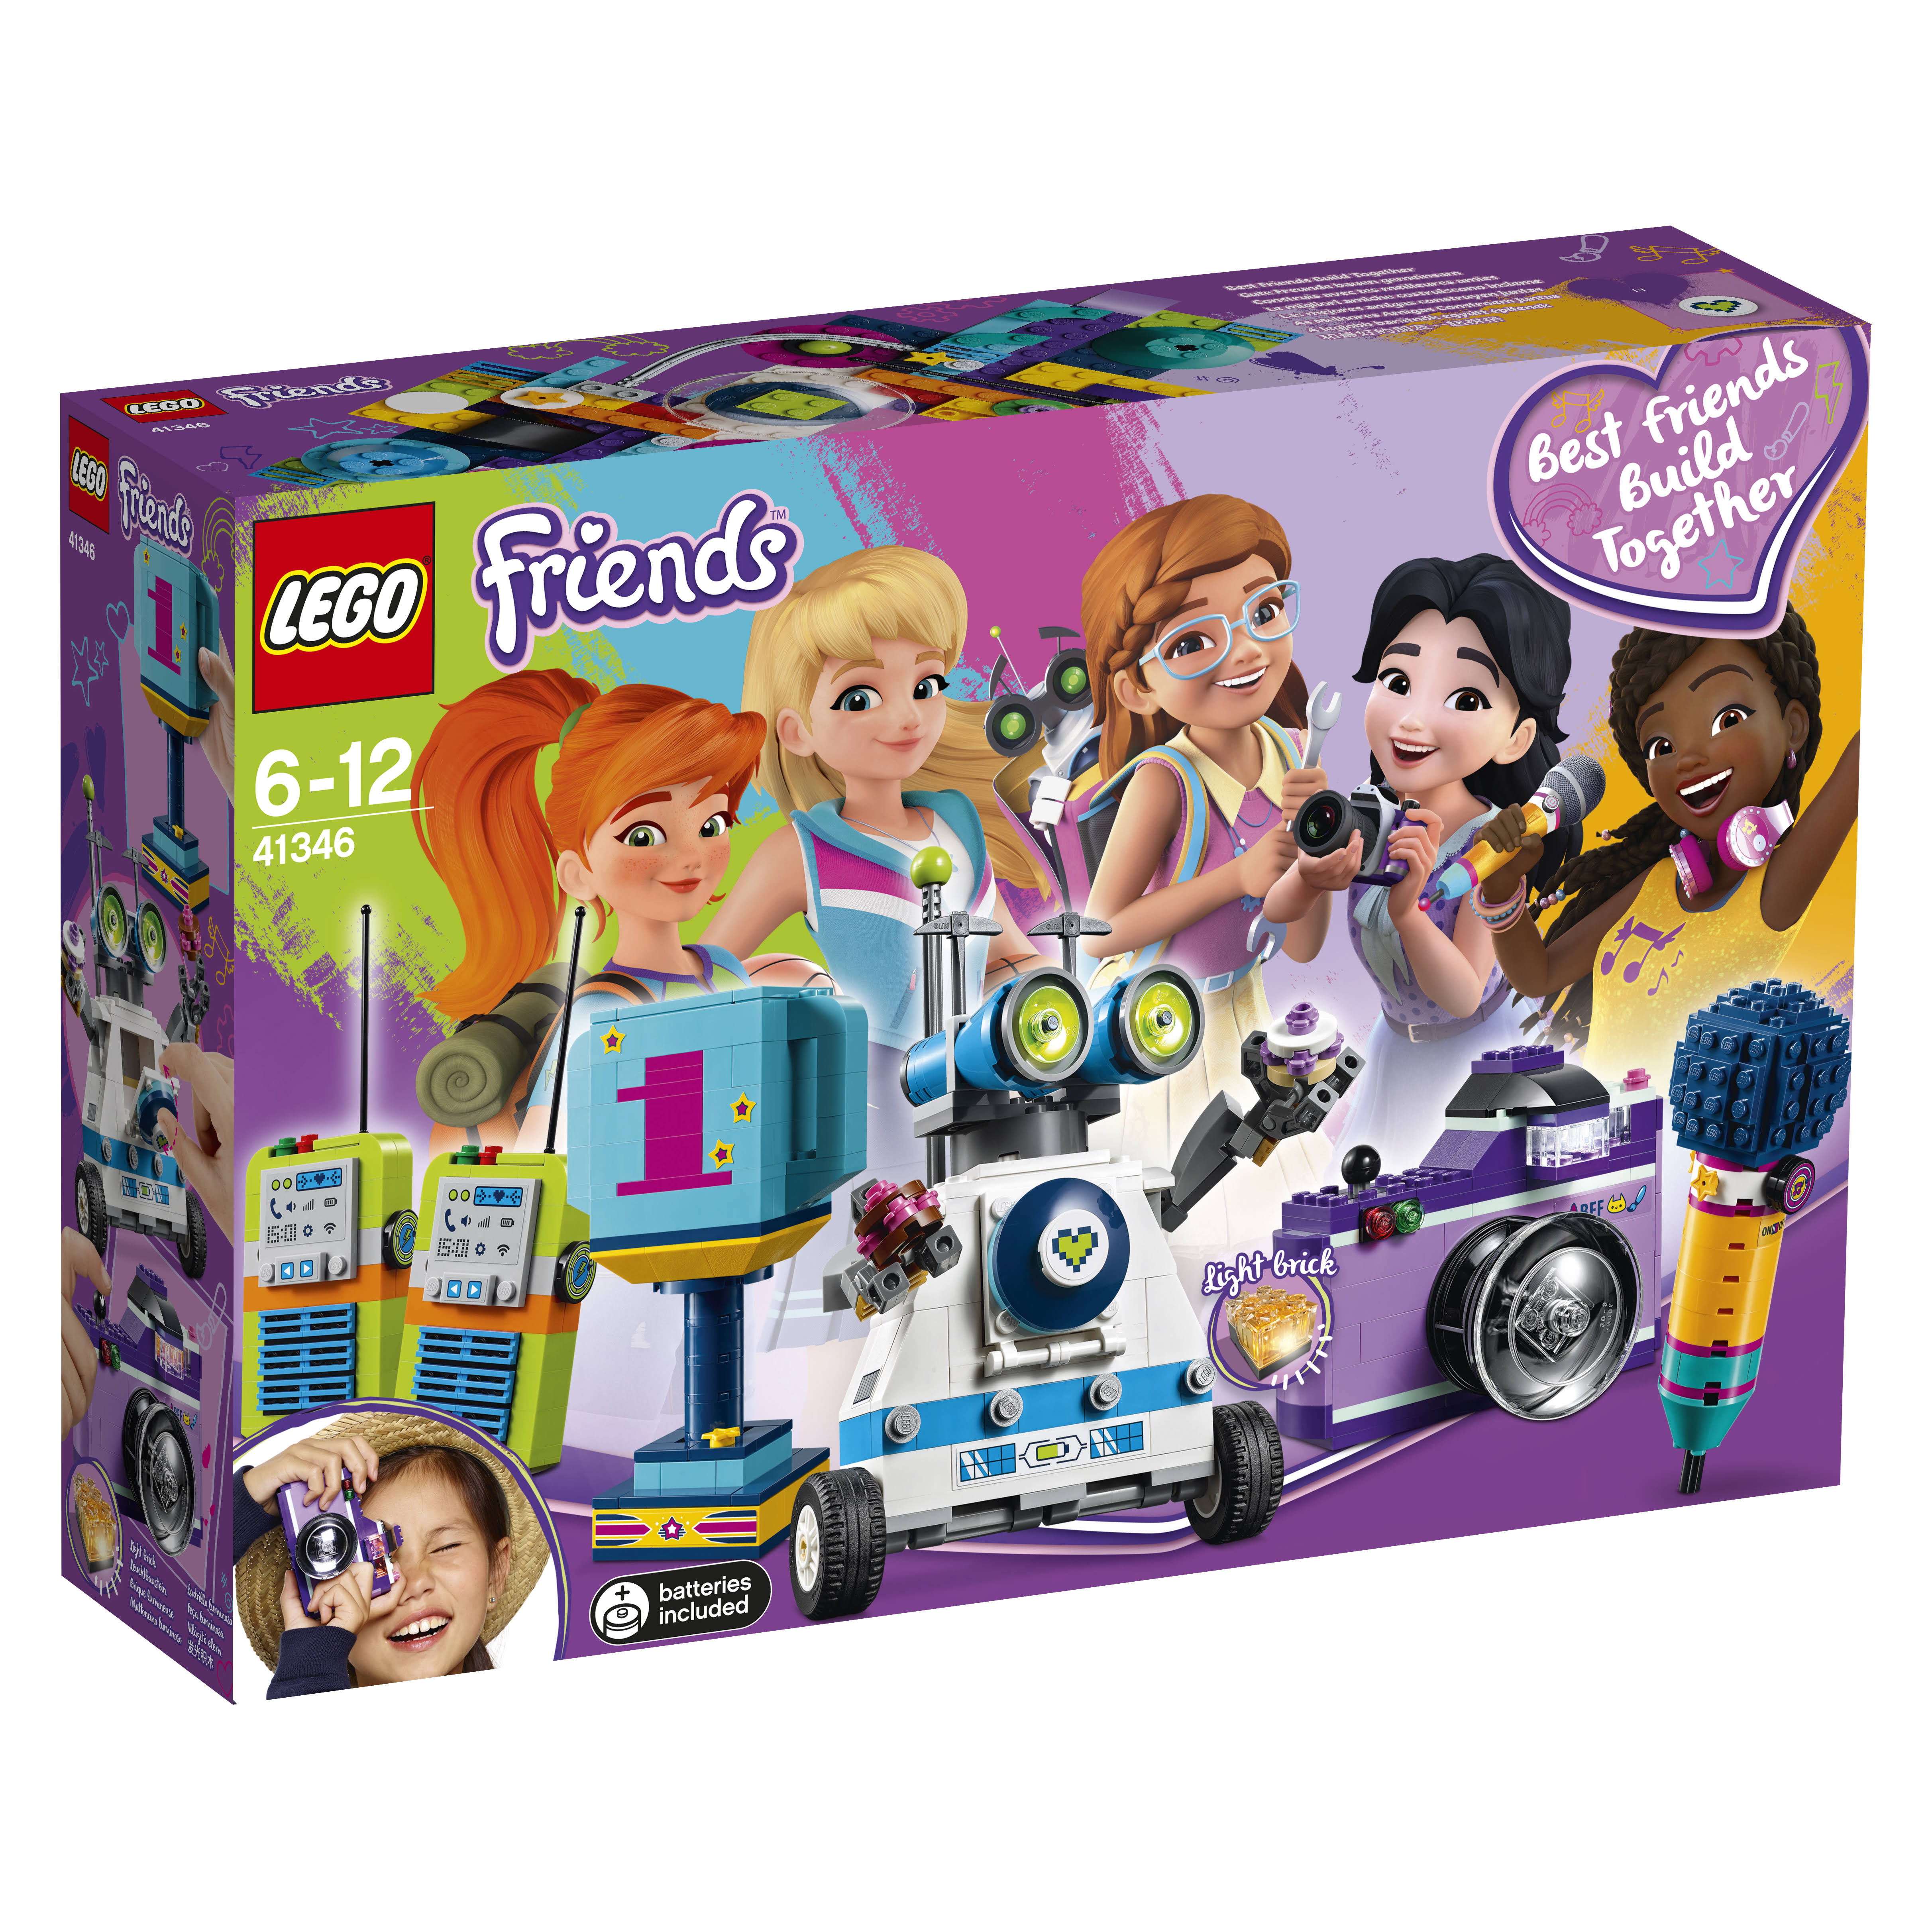 Lego Friends Friendship Box, Mic Camera Trophy Set